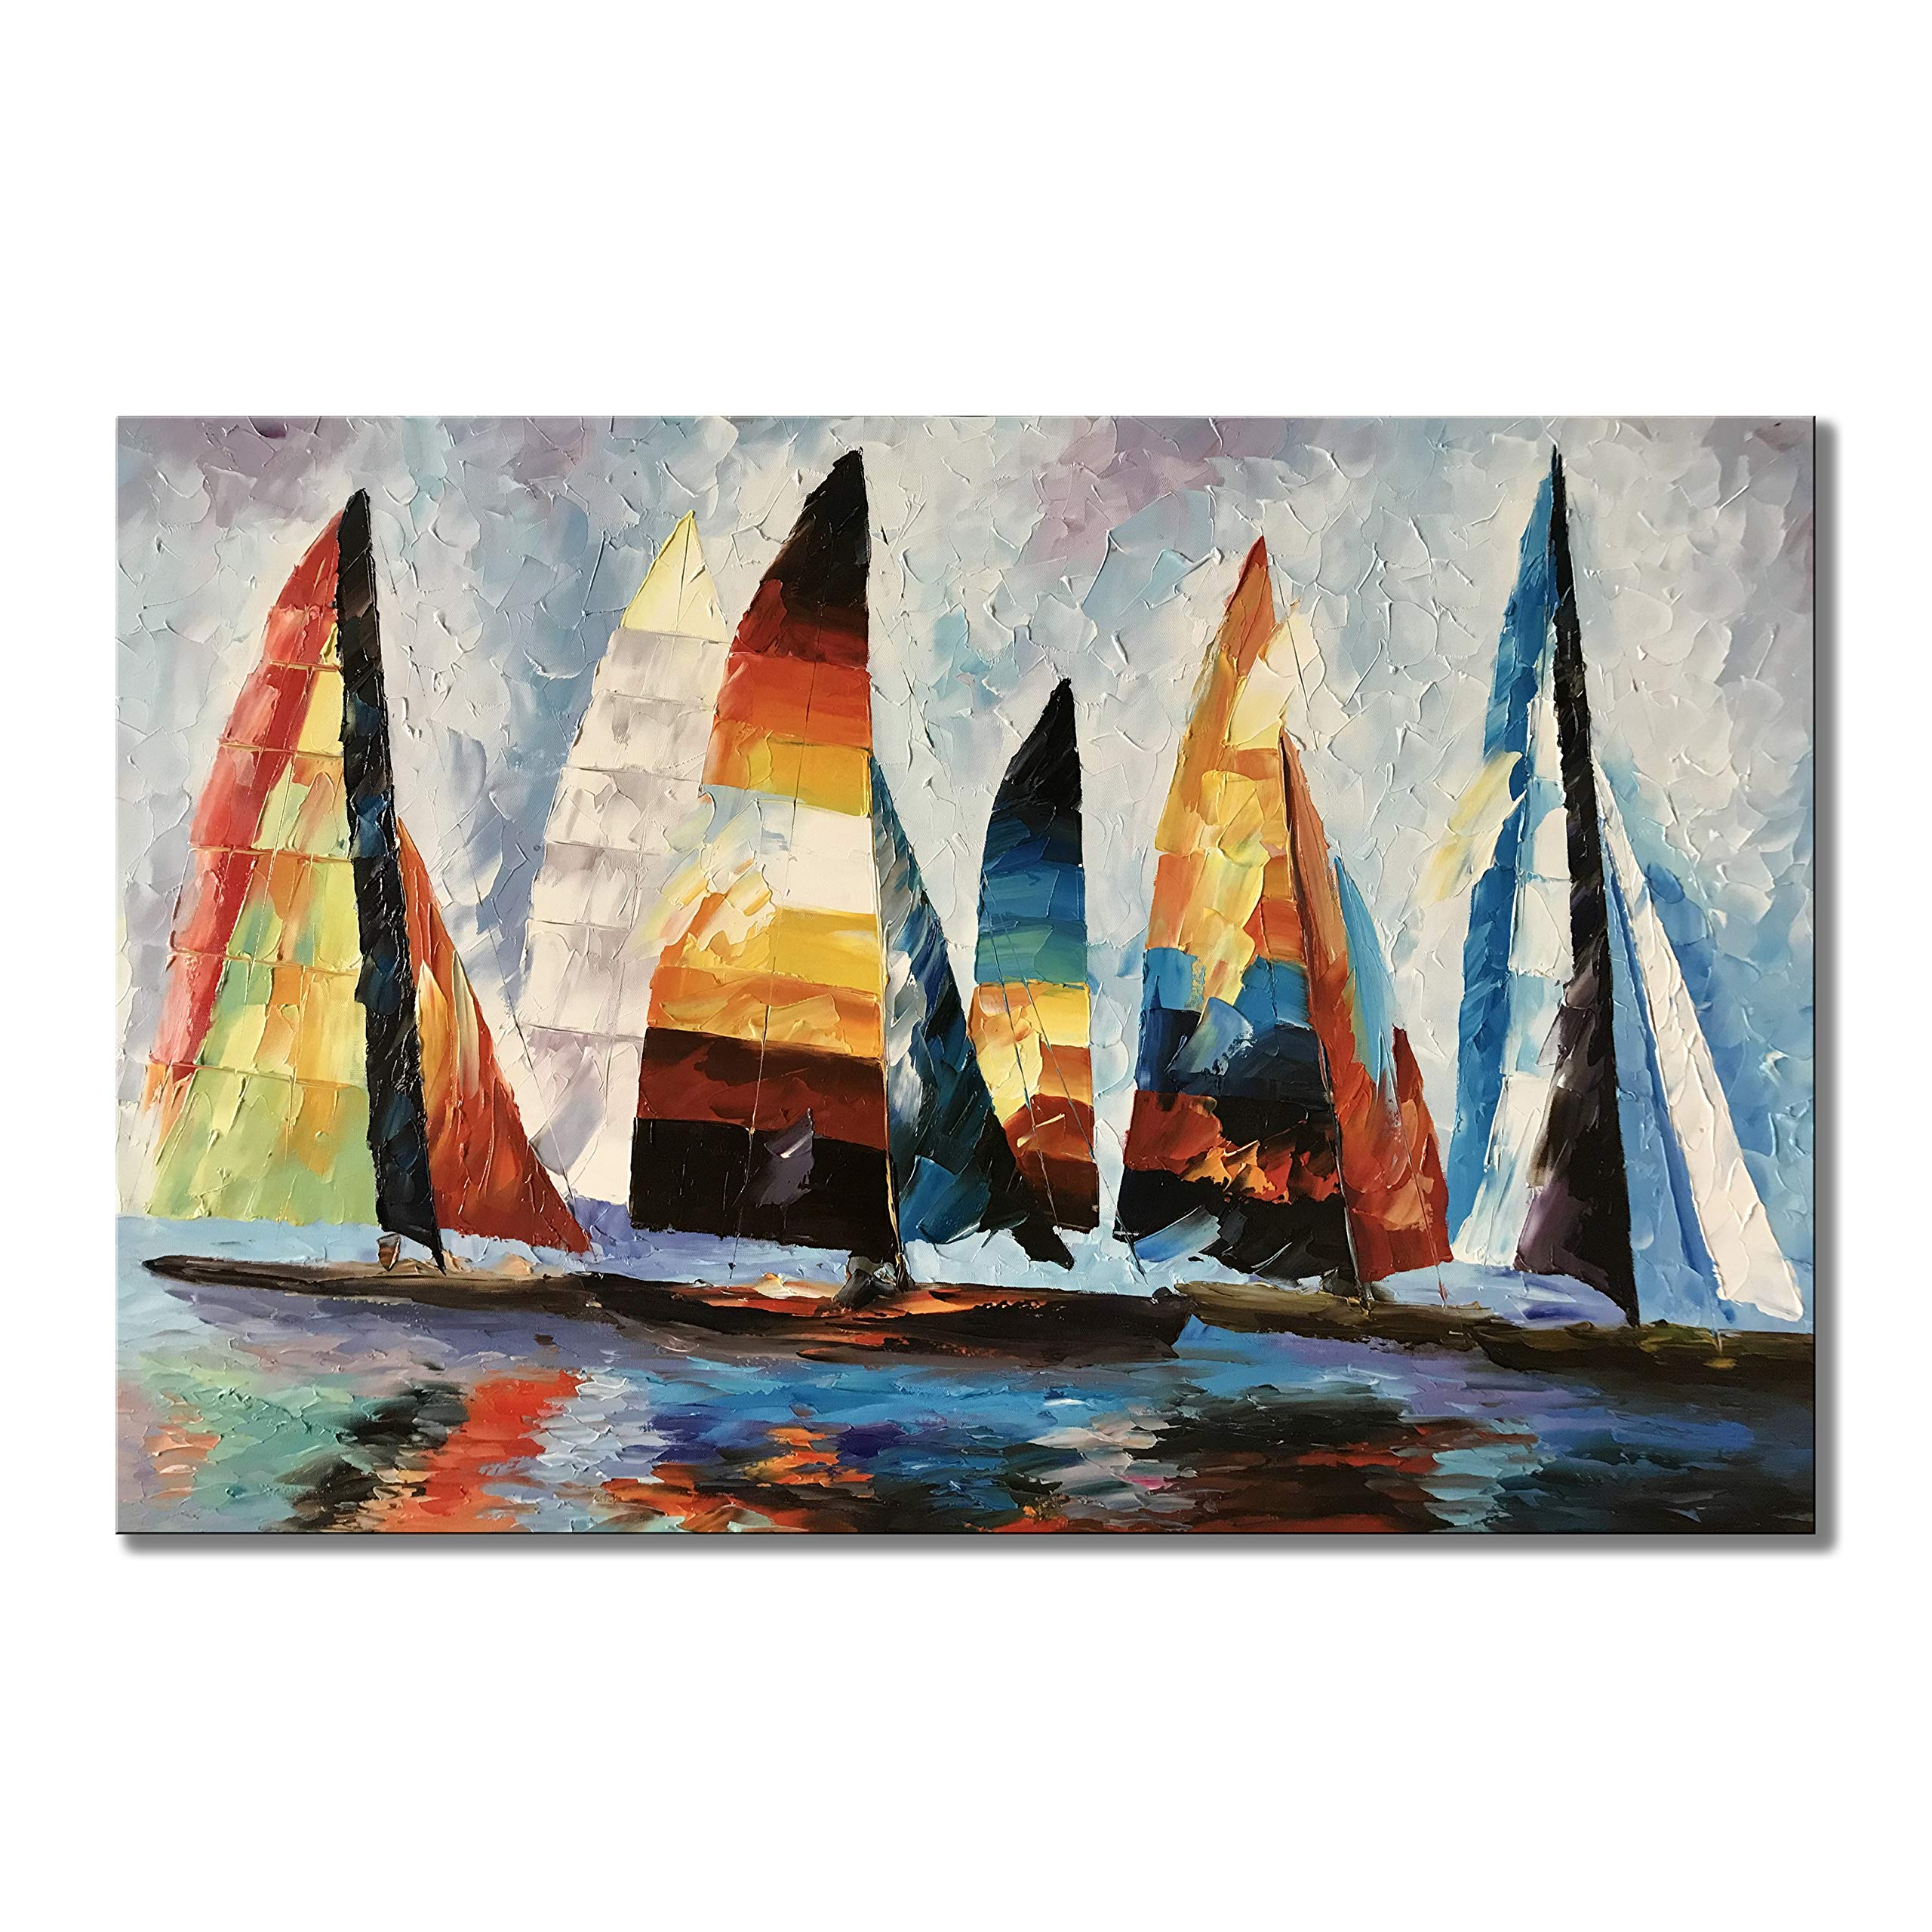 zoinart 100% Hand Painted Oil Paintings 24x36 inch Abstract Modern Canvas Wall Art Knife Painting Sailboat Artwork Home Decorations for Living Room Bedroom Dining Room Wall Decor Ready to Hang